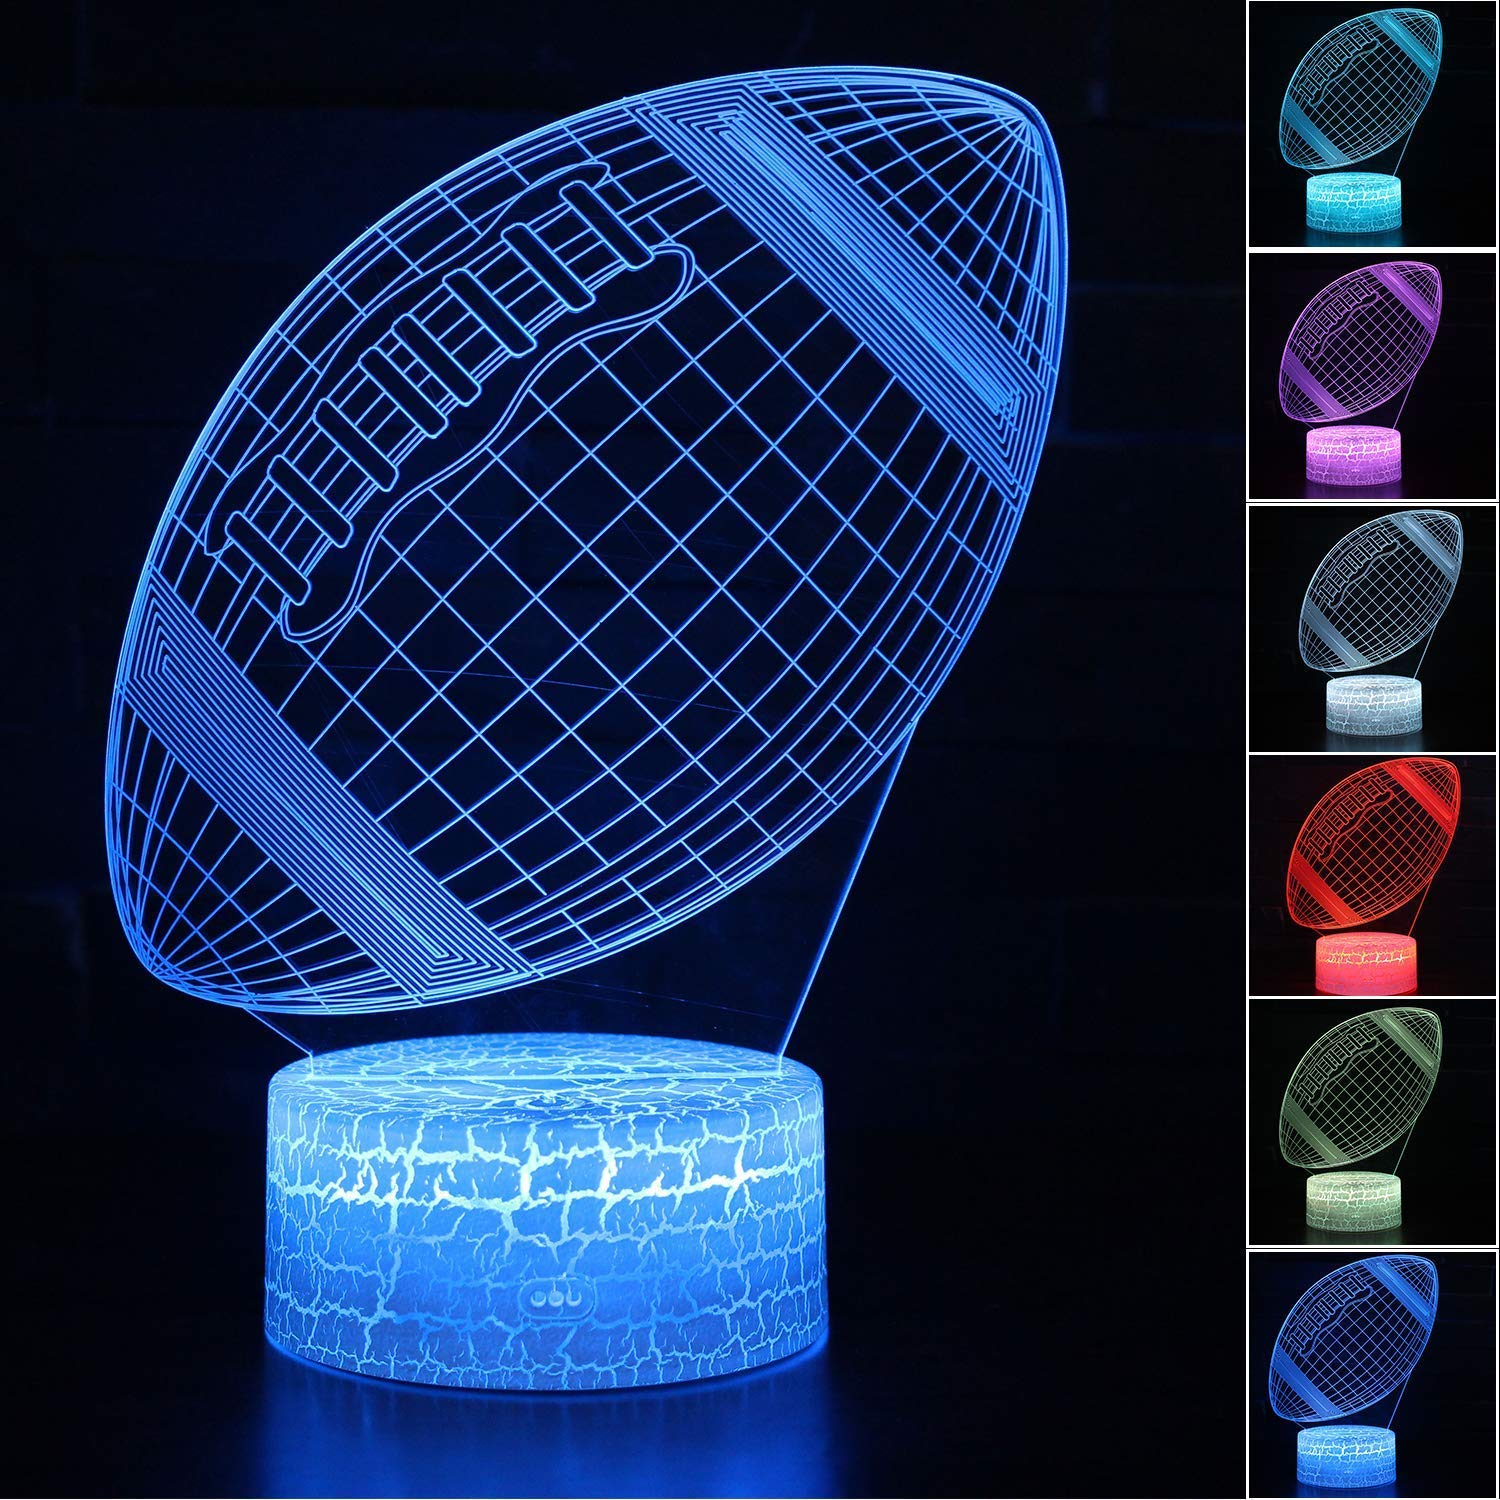 Palawell Football 3D Night Light - 3D Illusion Lamp for Boys 16 Changing Color Remote Control Football Kids Room Decor Lighting - with Charger (Football)